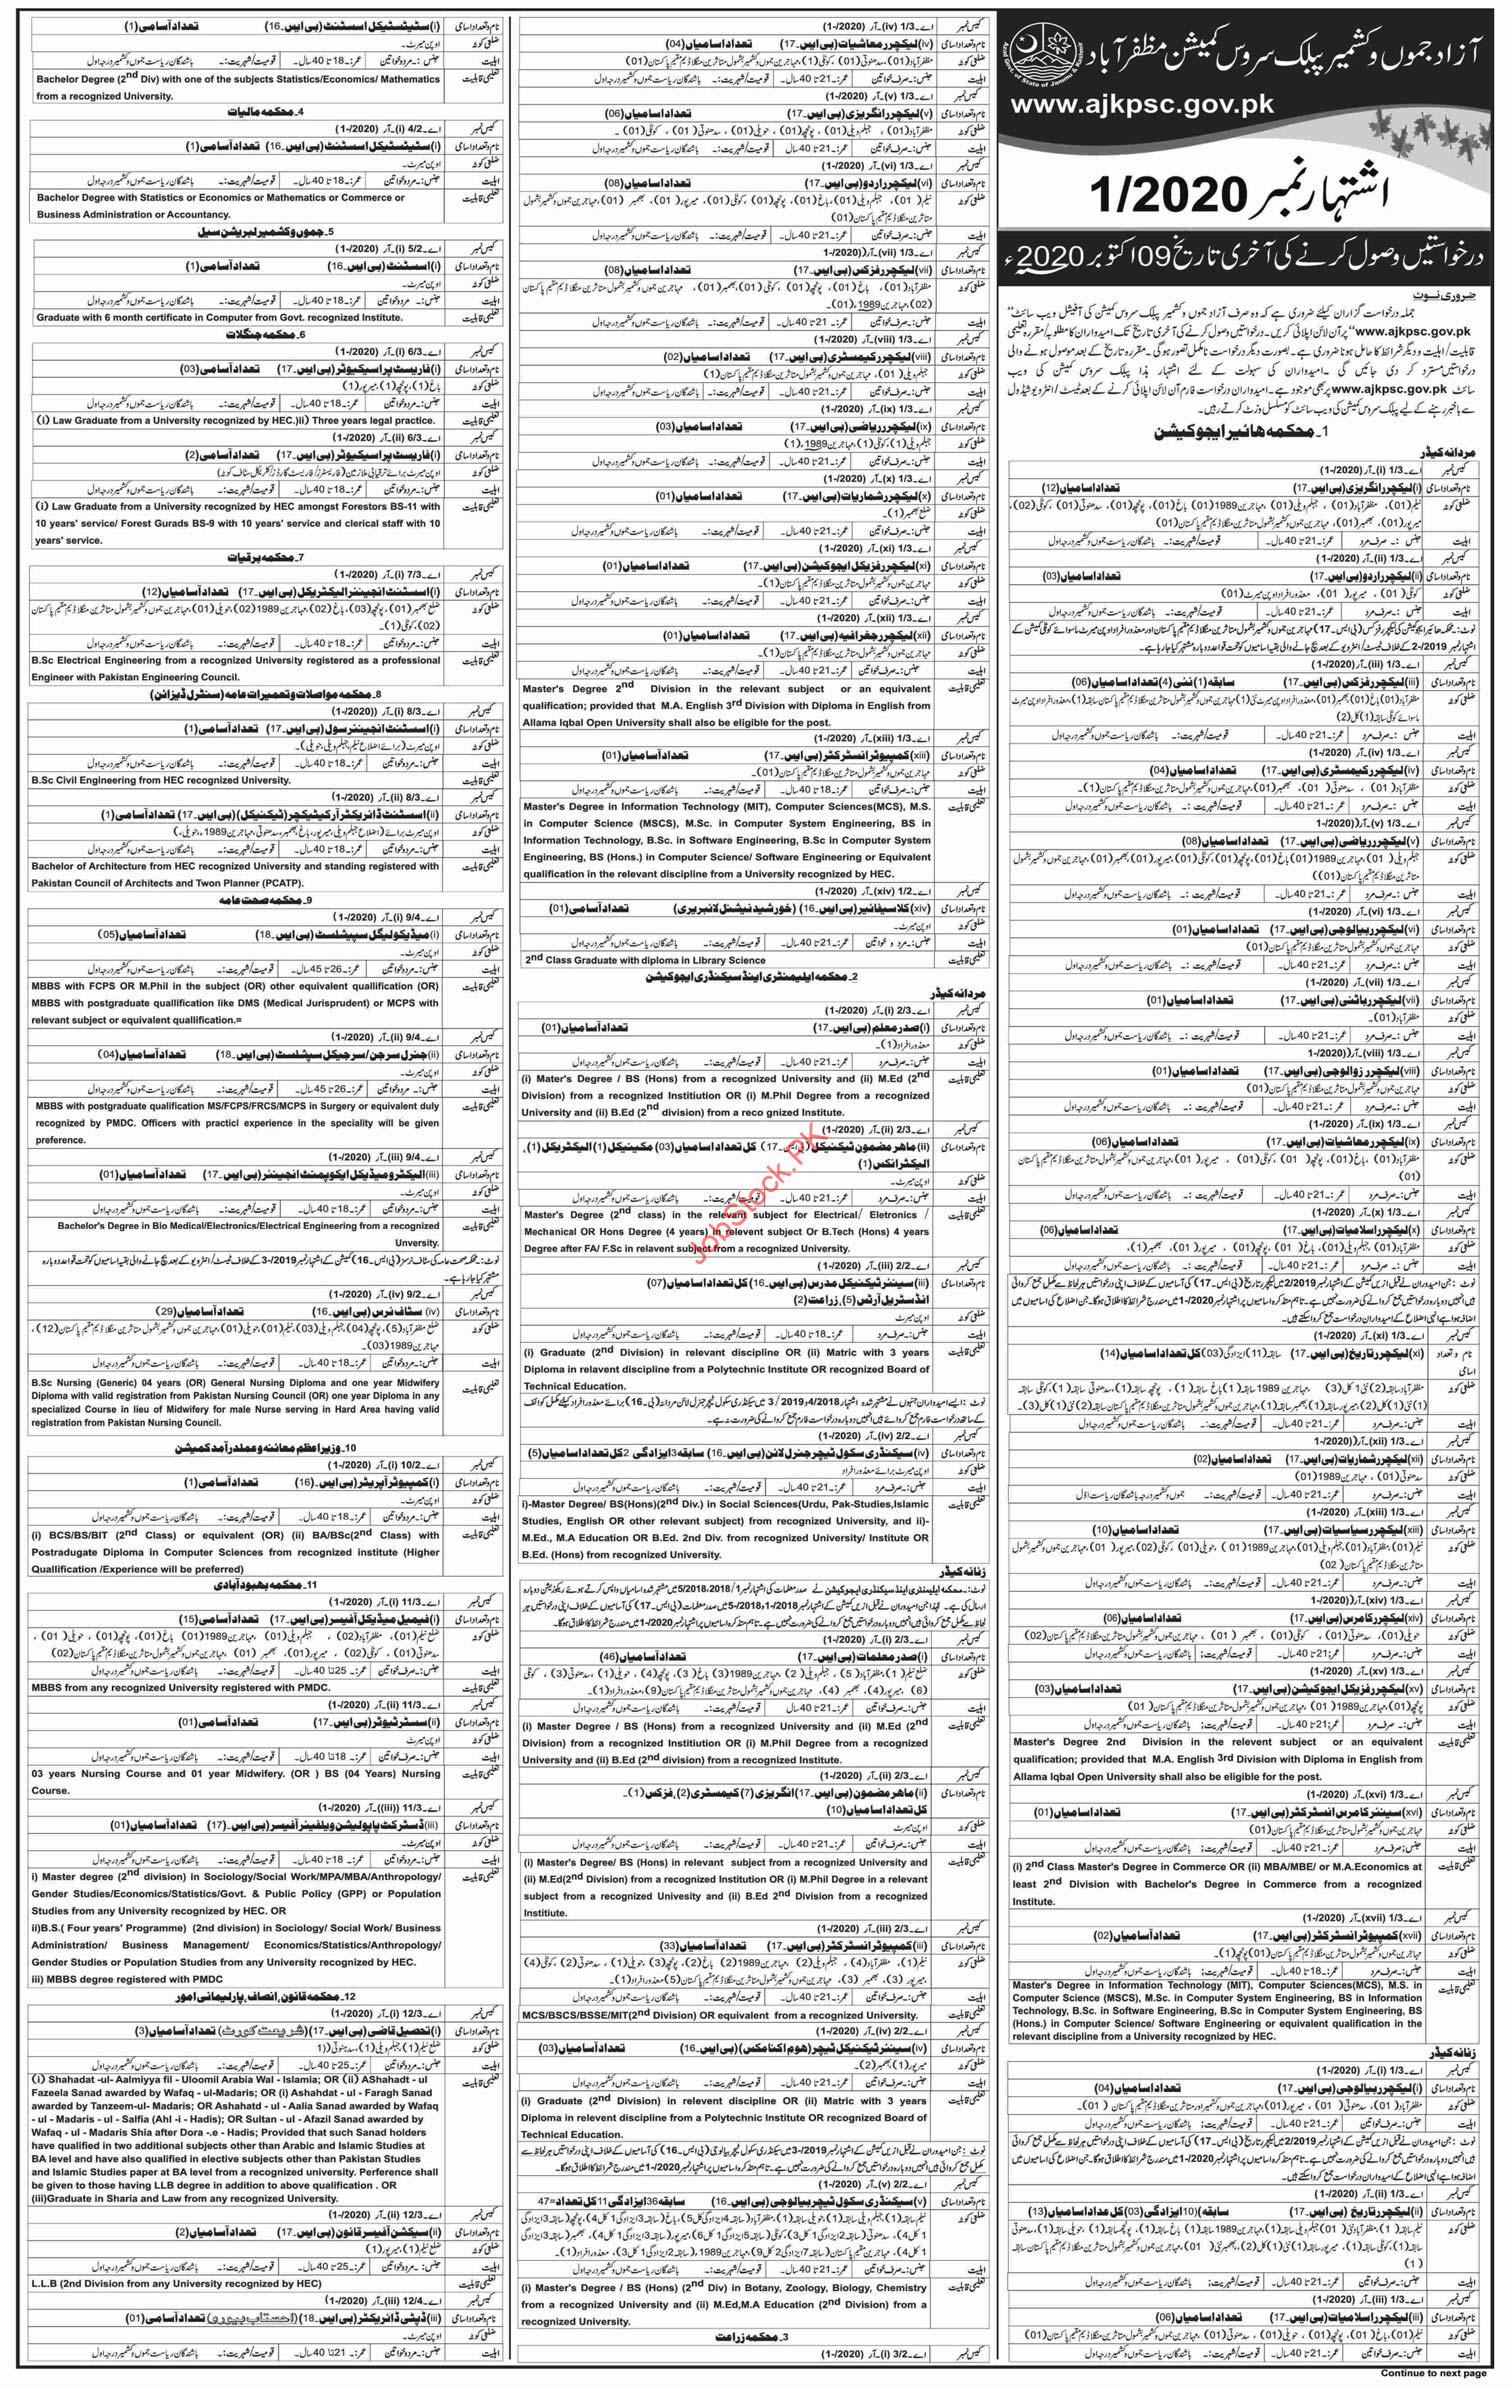 Ajkpsc Jobs 2020 Latest Advertisement No.012020 Apply Online